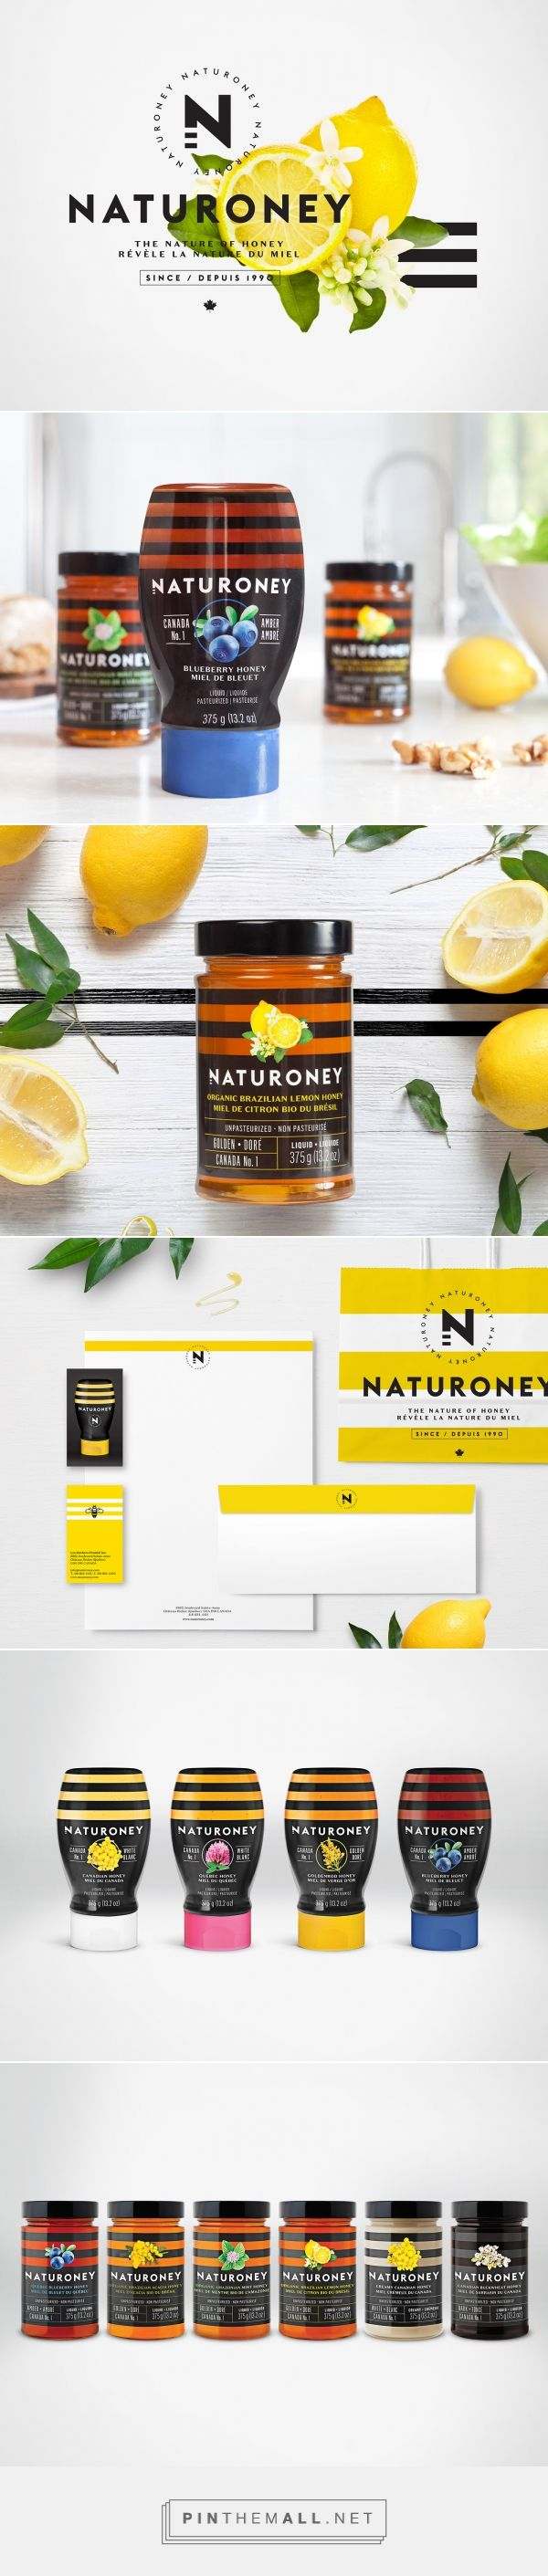 Naturoney Honey Branding and Packaging by Marie-Pier Gilbert and Lg2boutique | Fivestar Branding Agency – Design and Branding Agency & Curated Inspiration Gallery